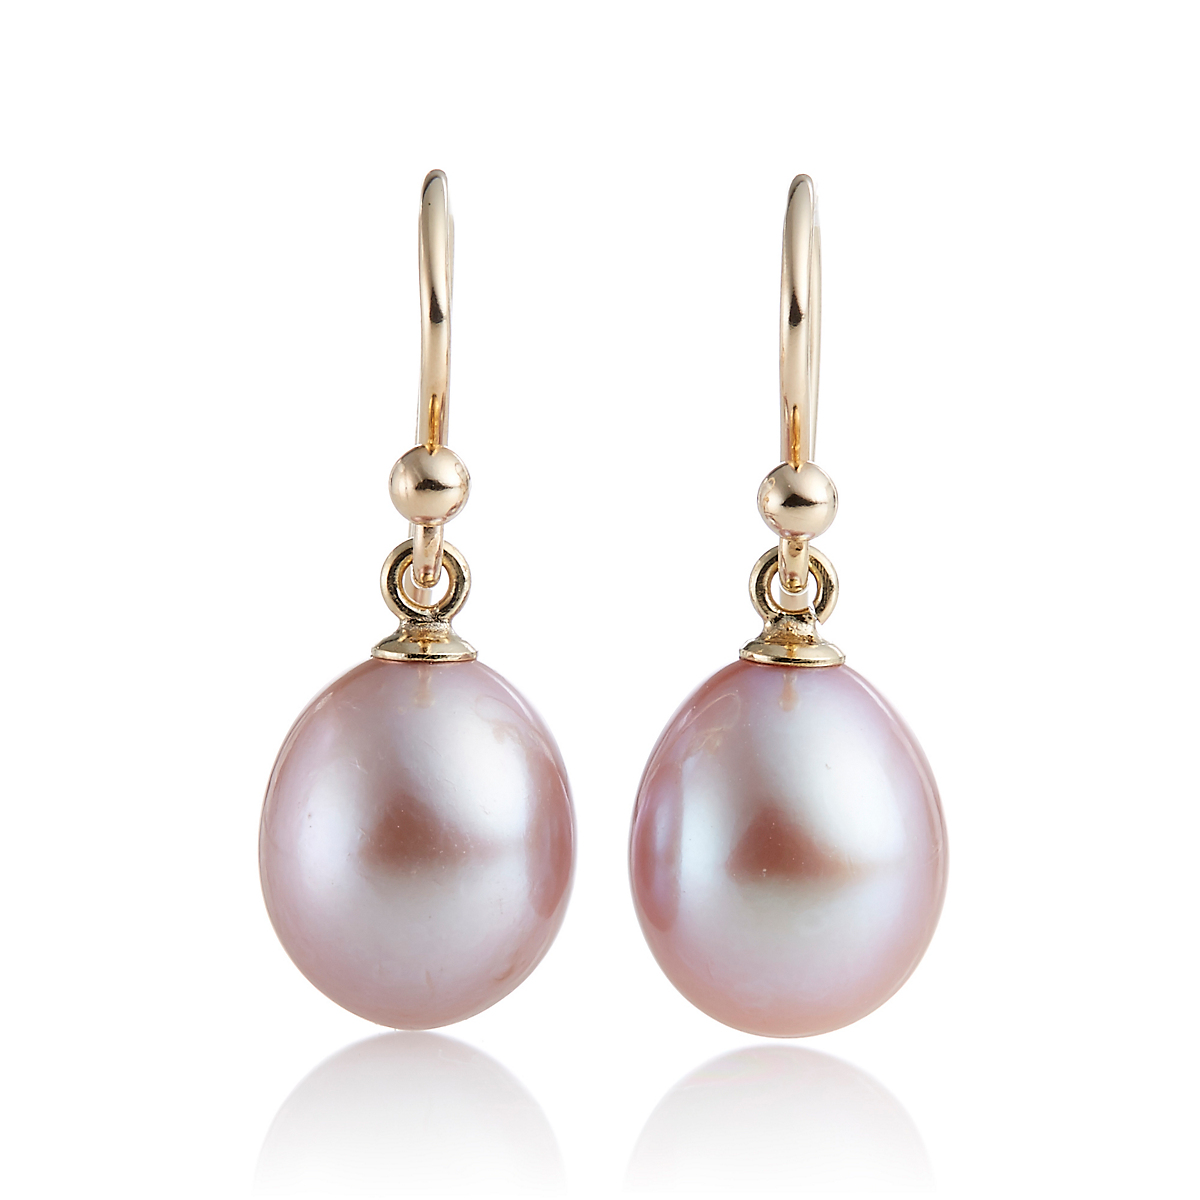 Gump's Pink Freshwater Cultured Pearl Drop Earrings